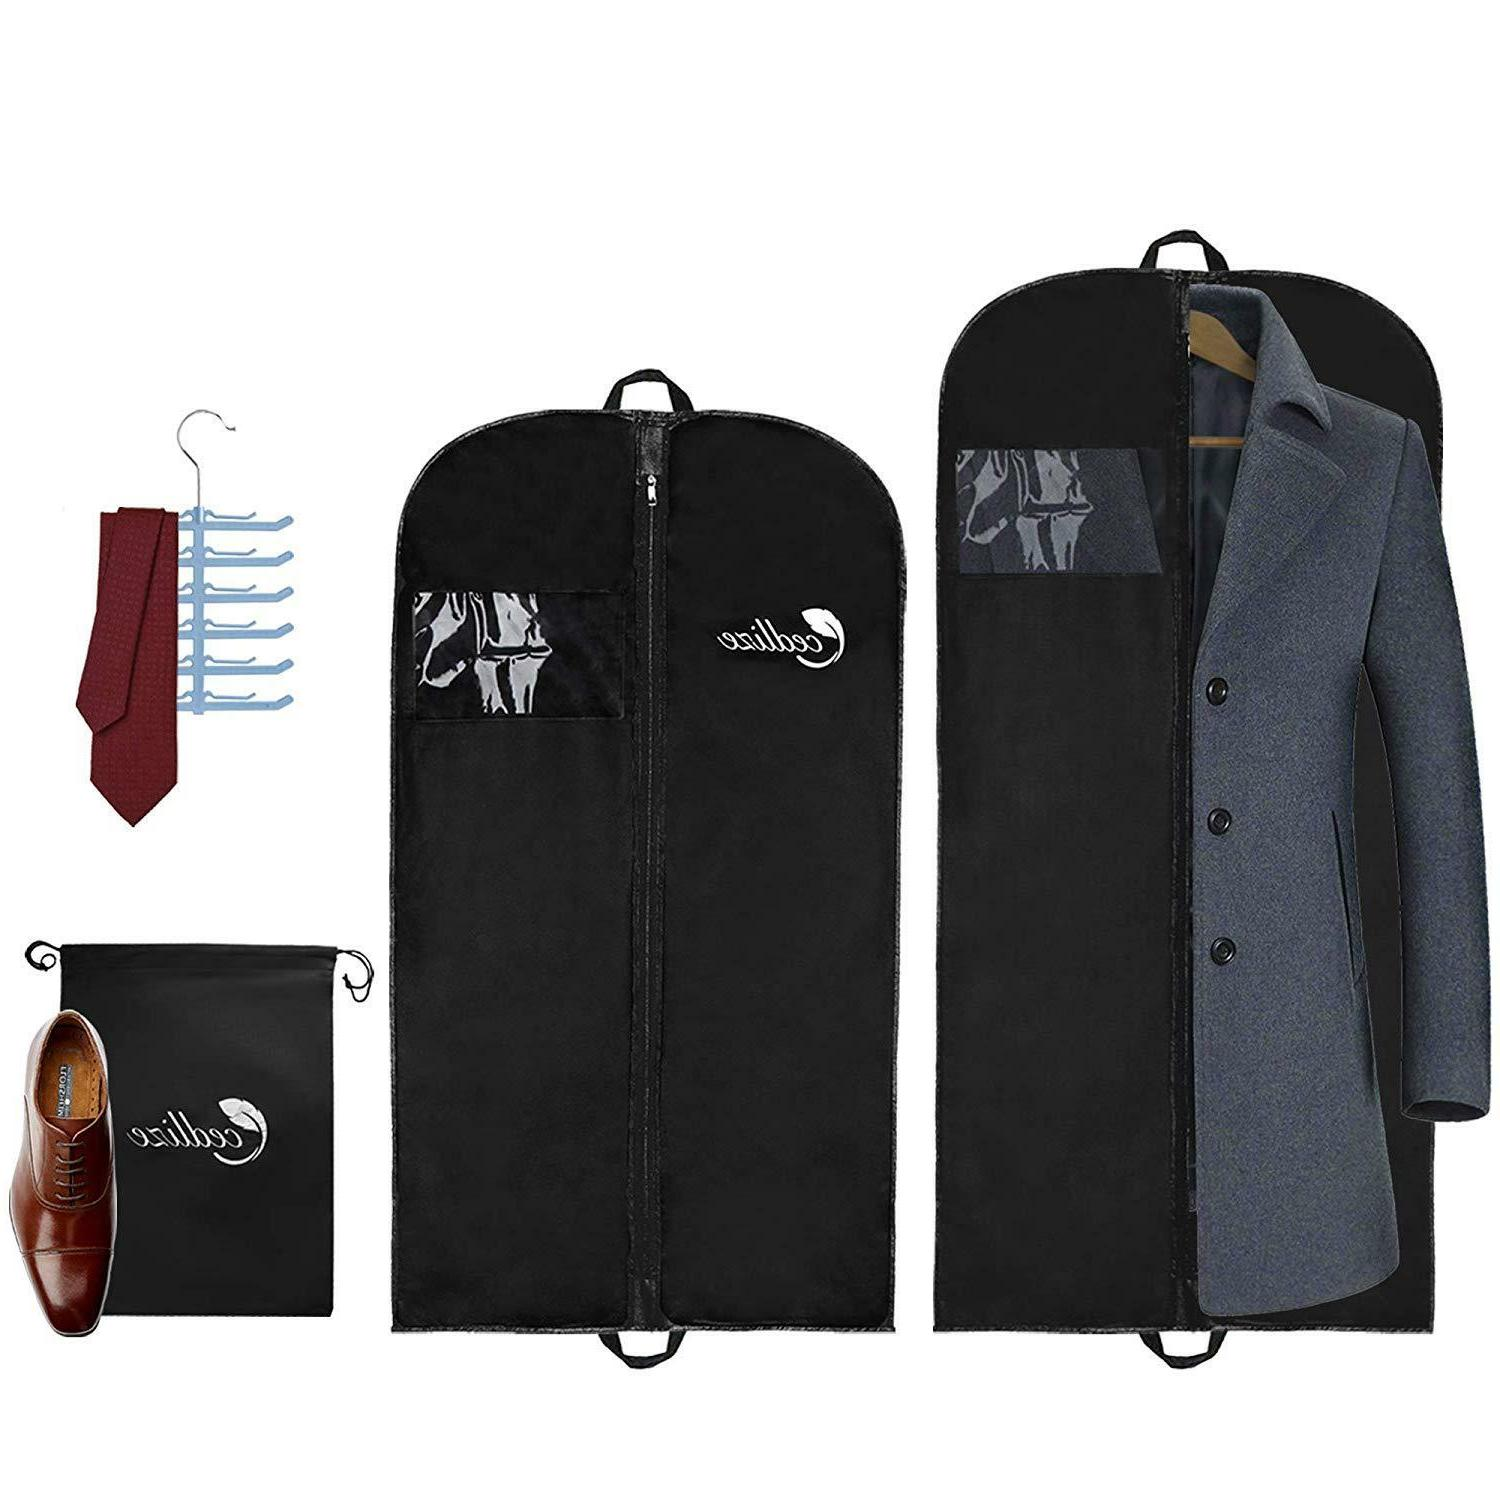 garment bags for travel and storage pack